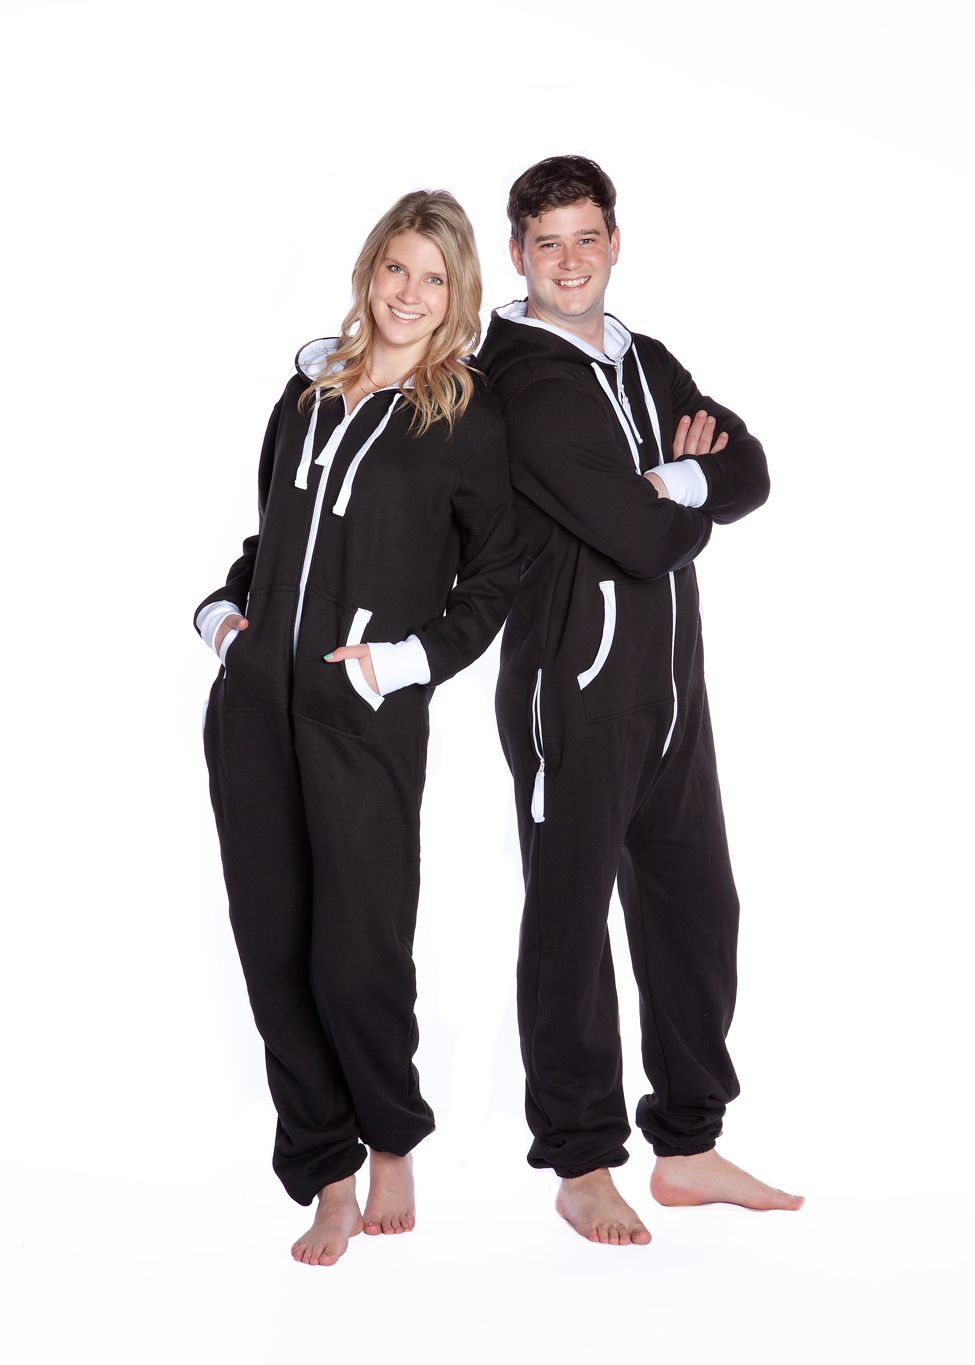 d310bfb5a170 Big Feet Hoodie Jumpsuits are the answer to both active wear and lounge  wear. This soft Cotton Poly (80 20) blend is excellent for staying warm and  comfy ...